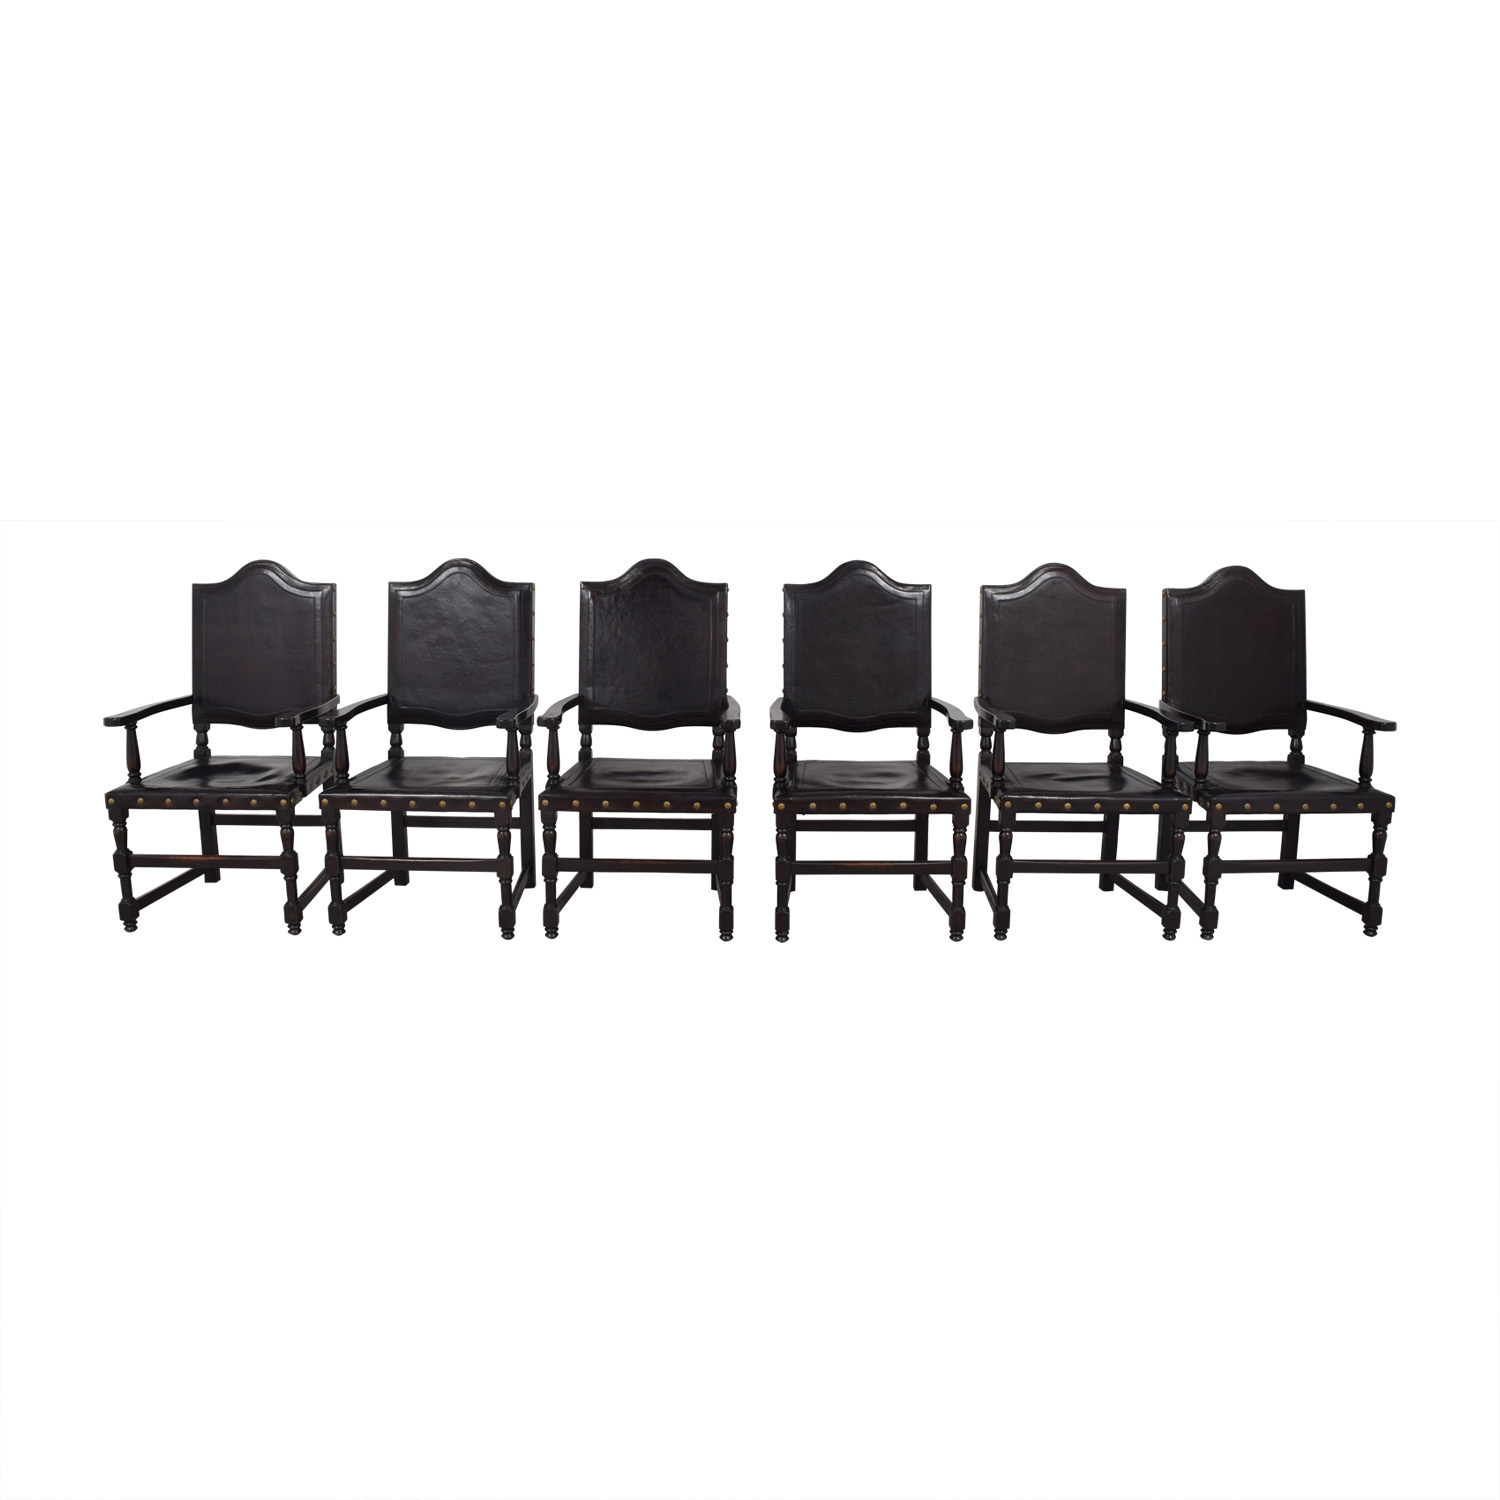 buy South Cone Furniture South Cone Furniture Dining Chairs online